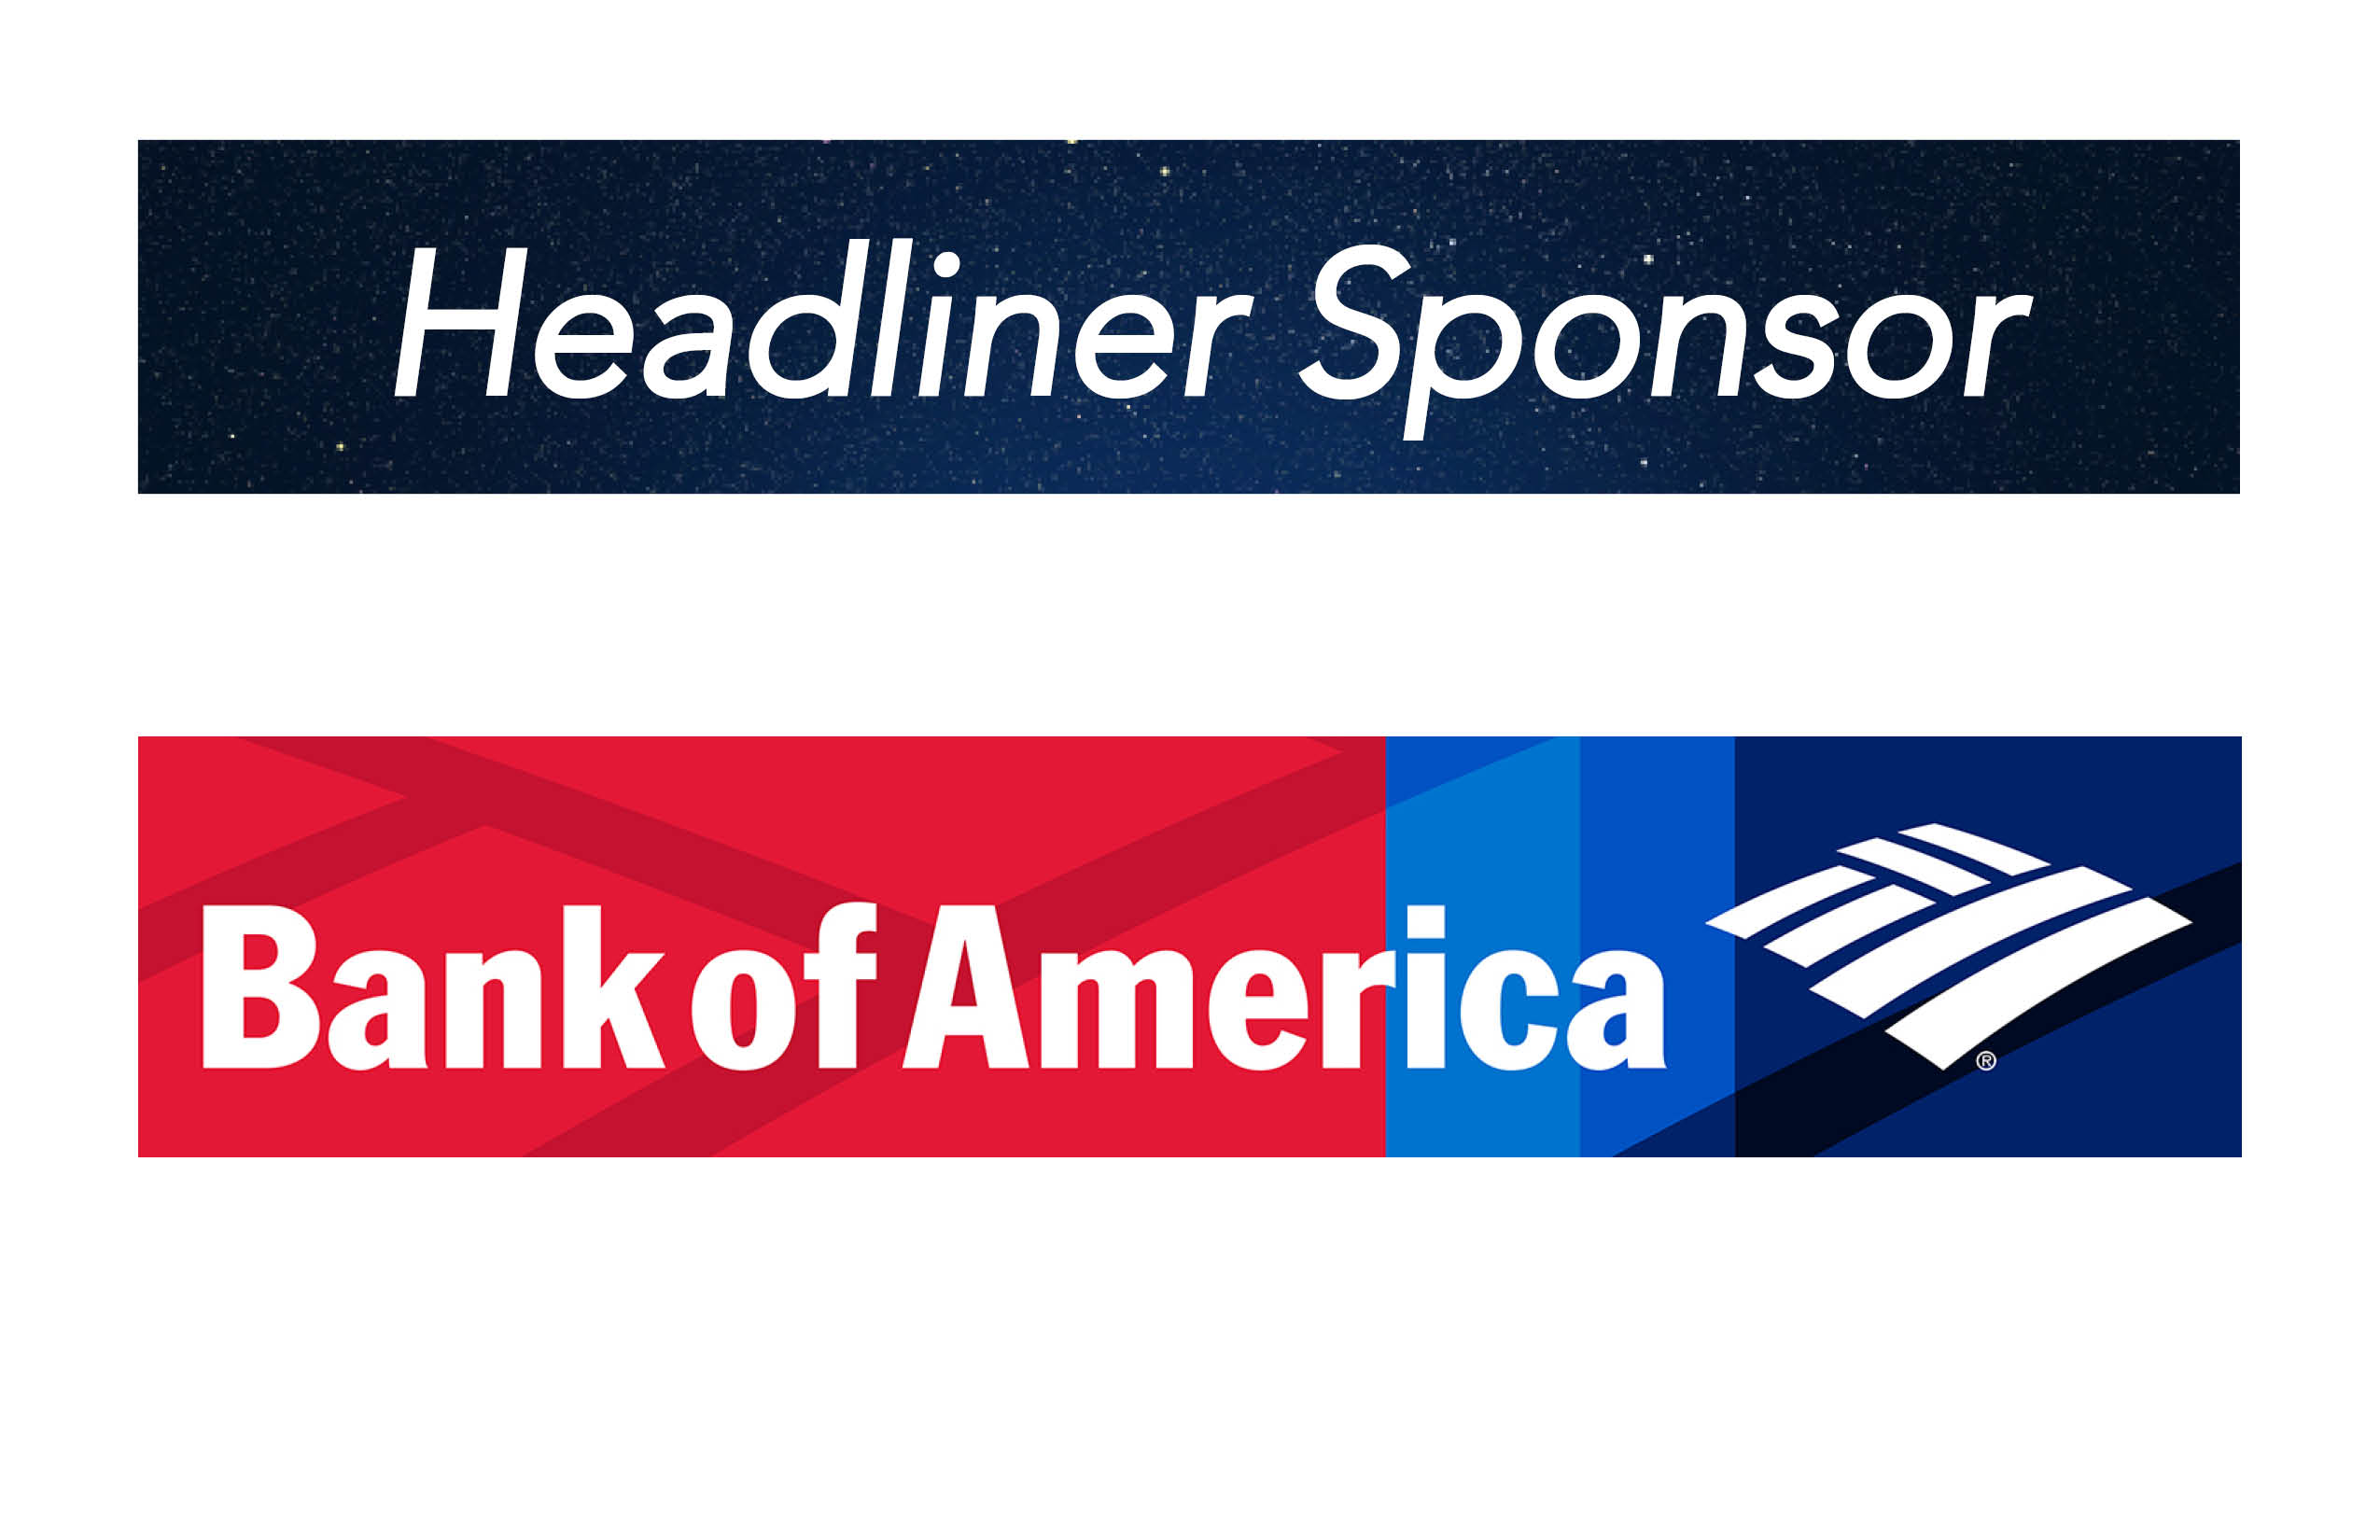 Bank of America, Headliner Sponsor